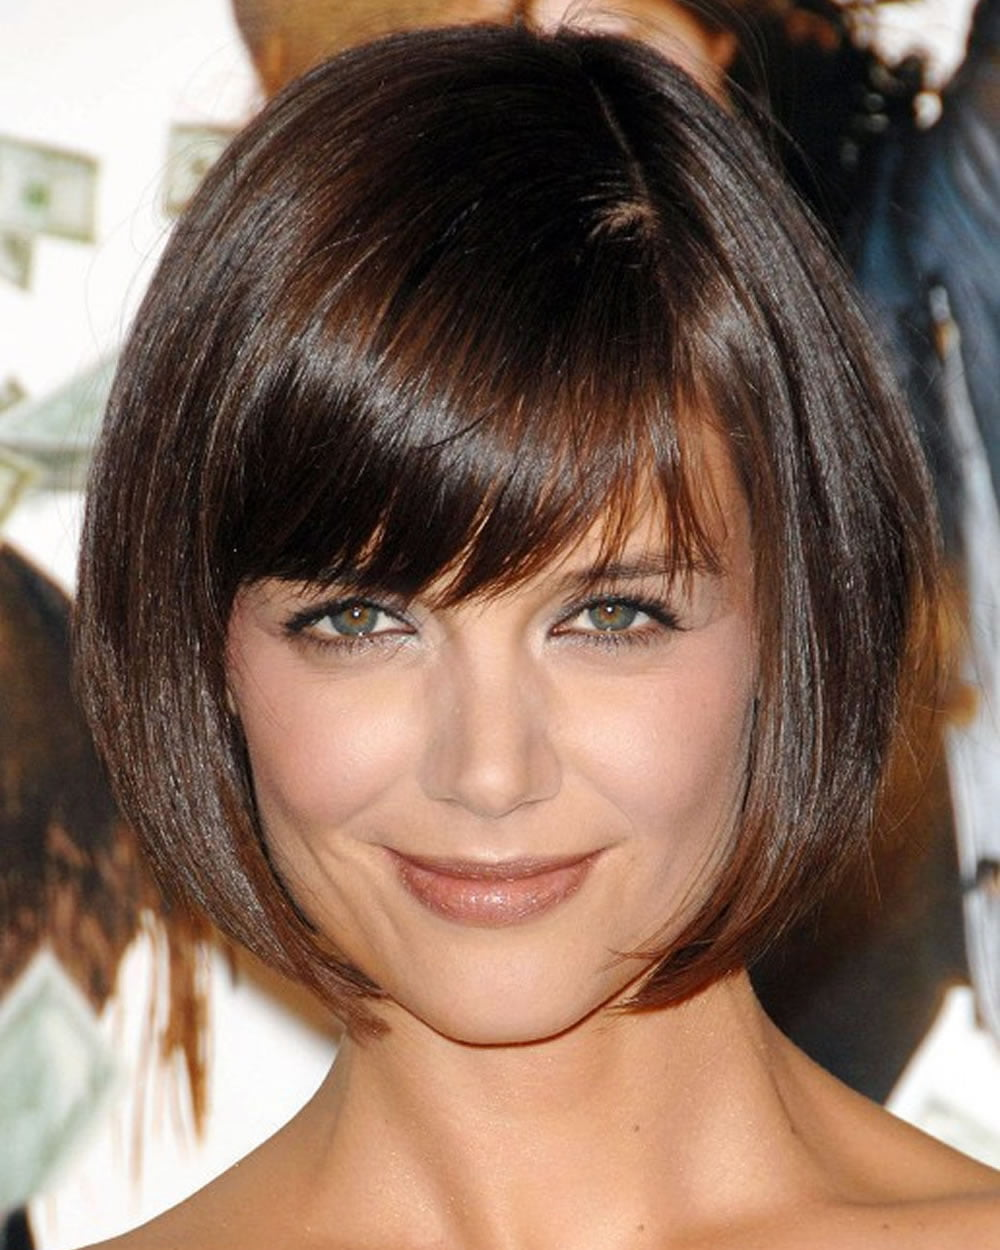 bob haircuts with bangs for hair 31 chic haircut ideas 2018 amp pixie amp bob hair 4413